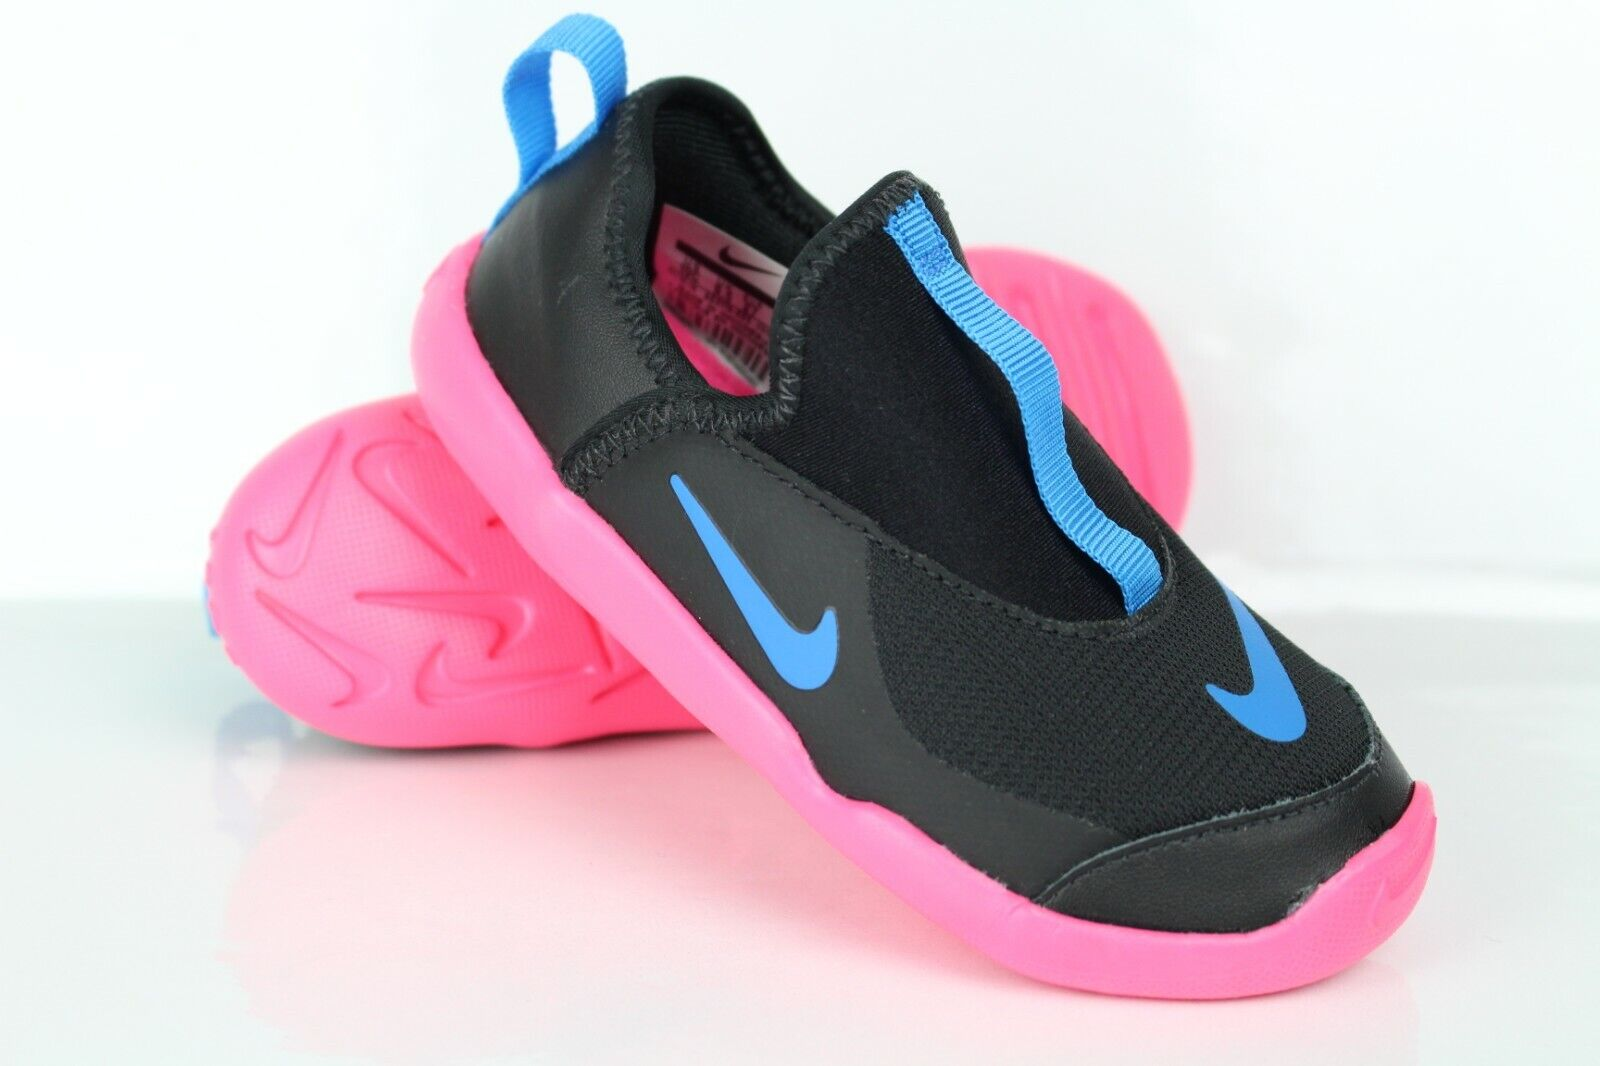 toddler lil swoosh sneakers size 8c 9c